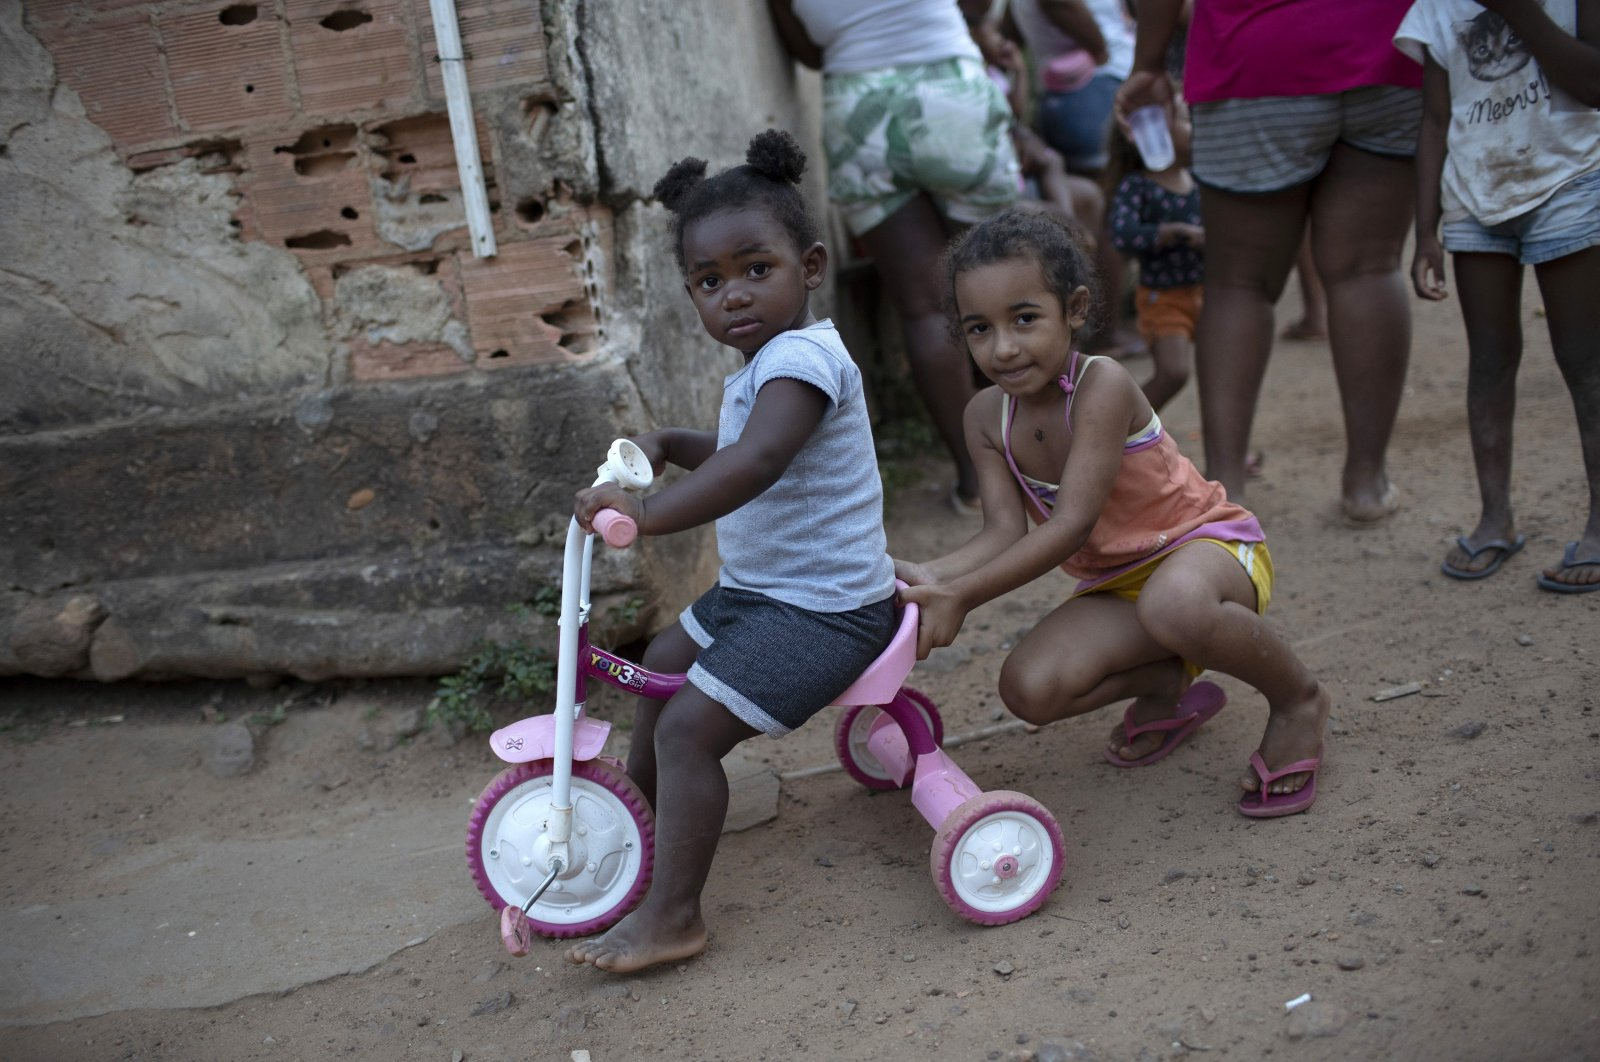 Children play as the adults collect donated food, cleaning supplies and protective face masks on the outskirts of Rio de Janeiro, July 12, 2020. (AP Photo)